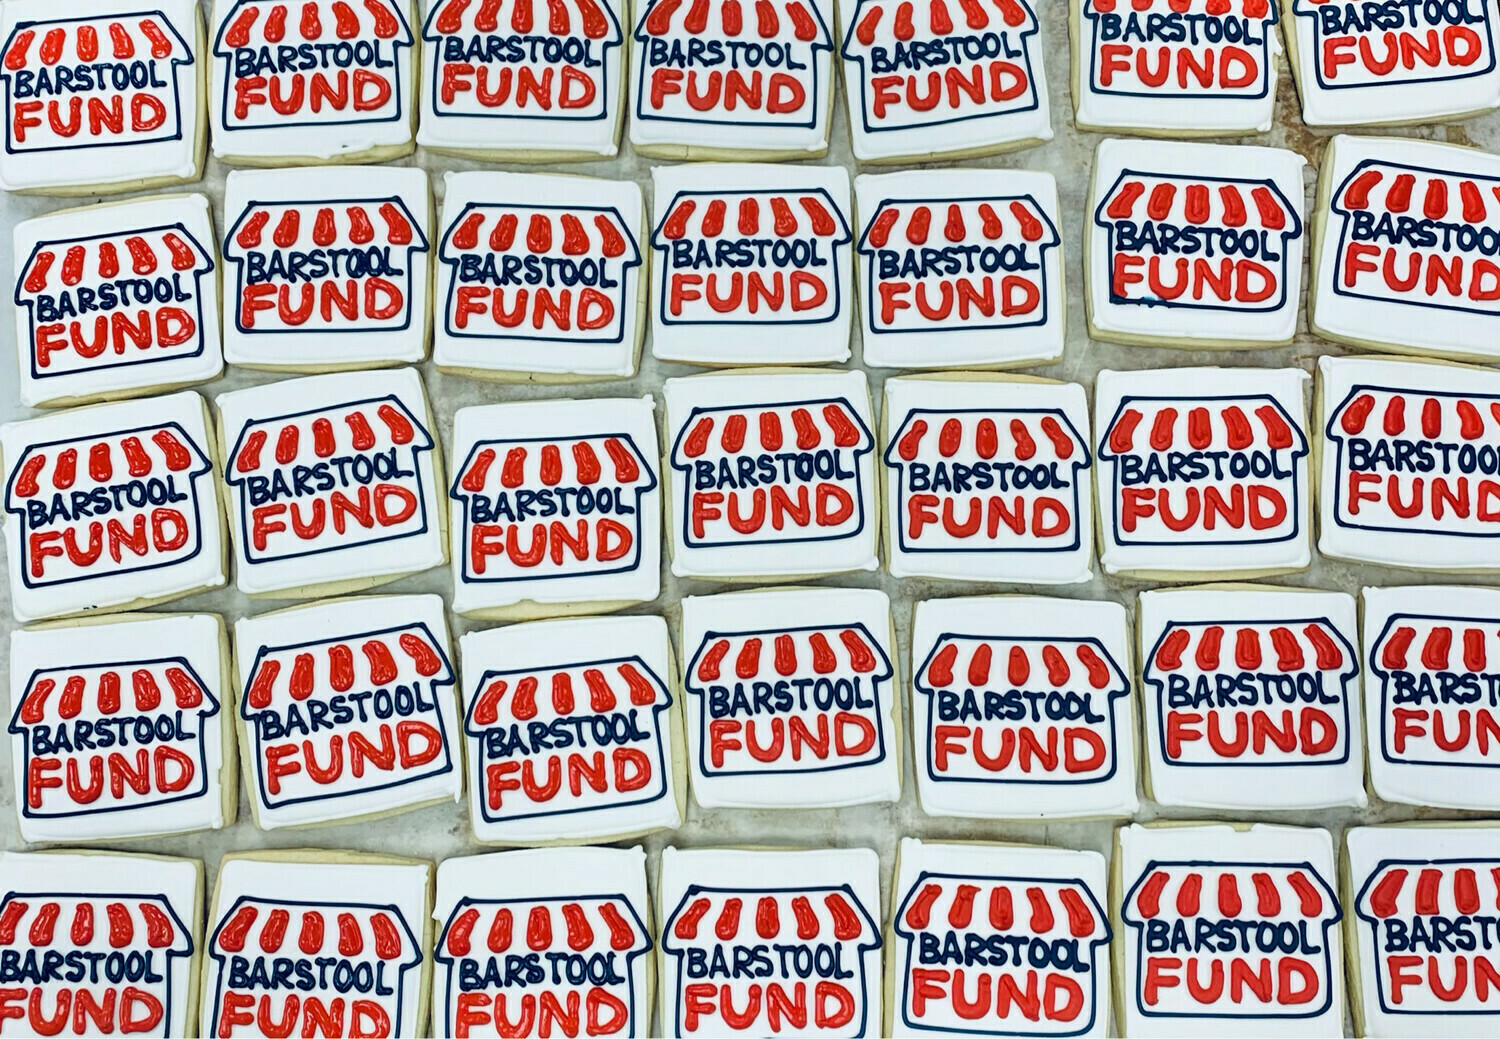 *SHIPPED* Barstool Fund cookies, 12 pack